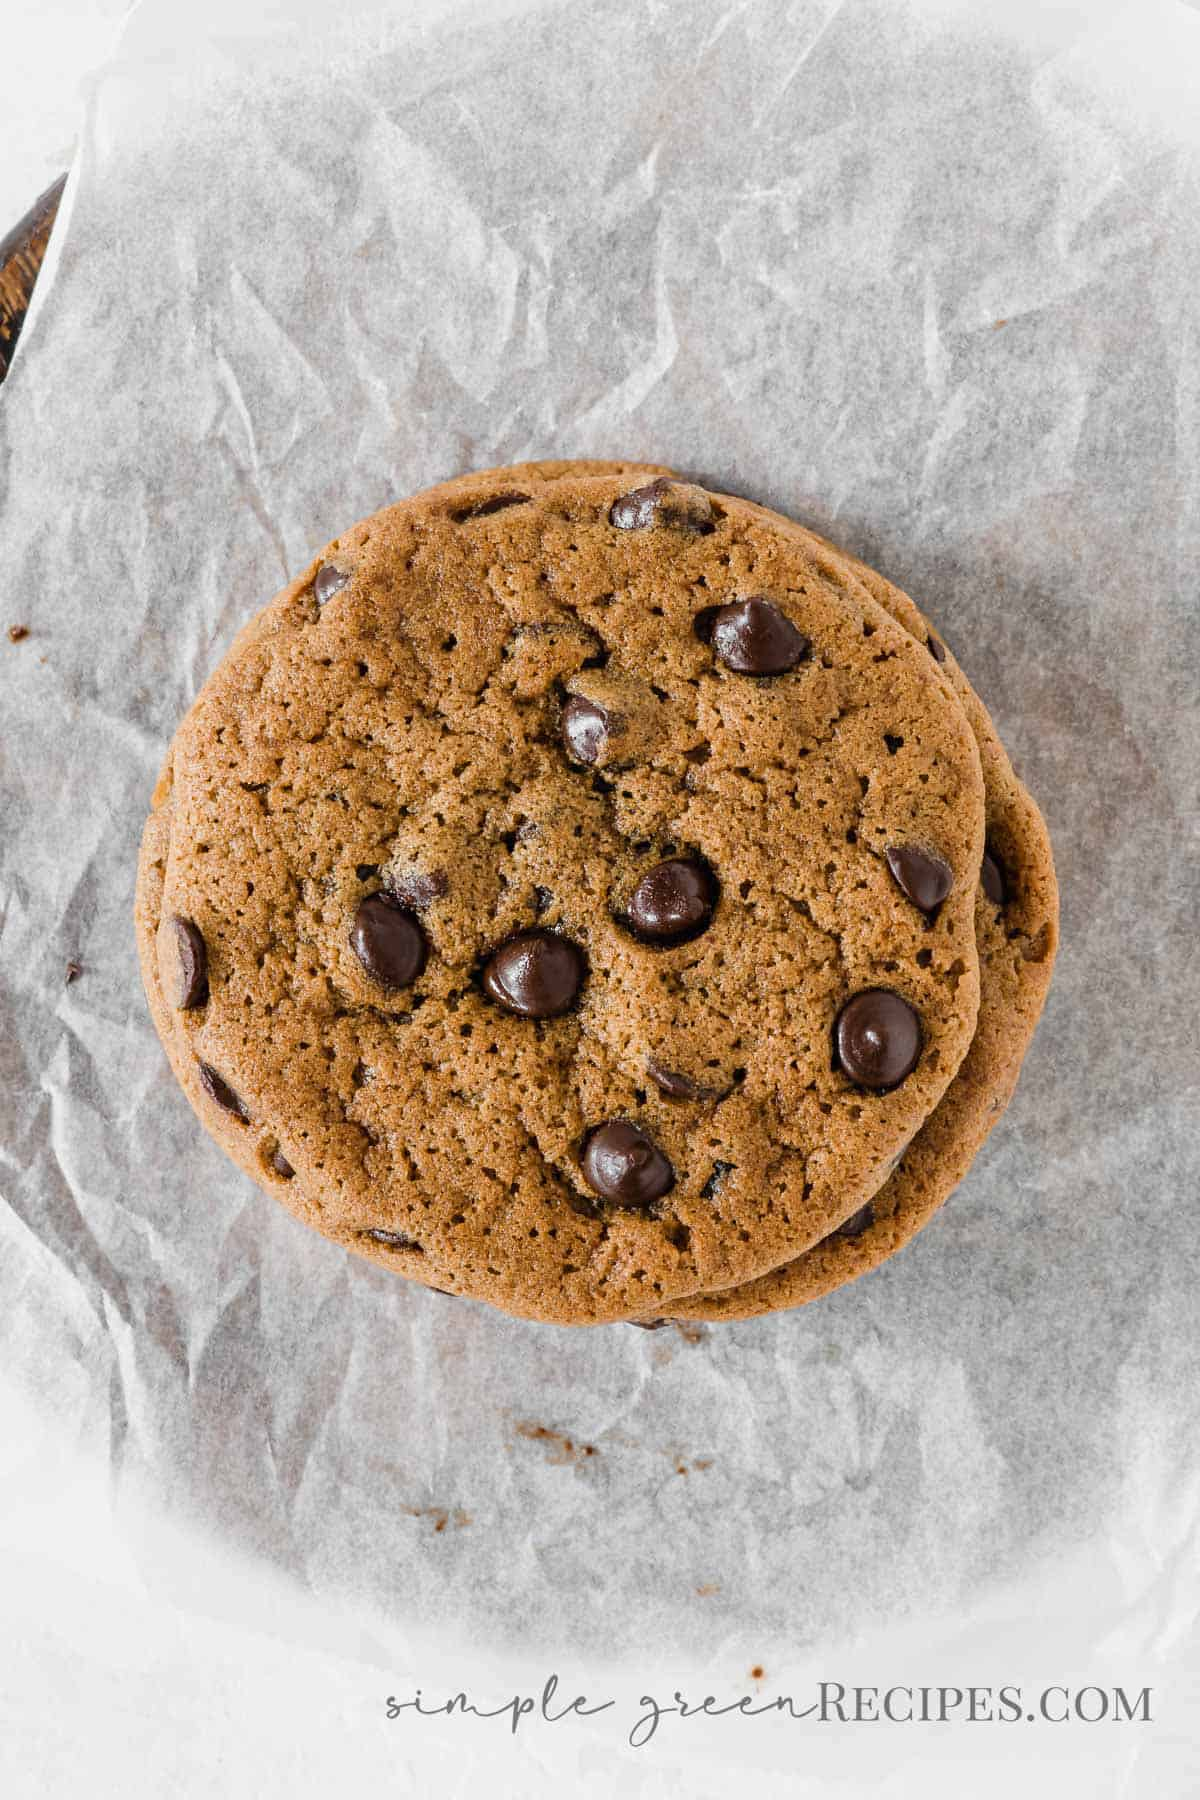 Stack of chocolate chip cookies on a parchment paper